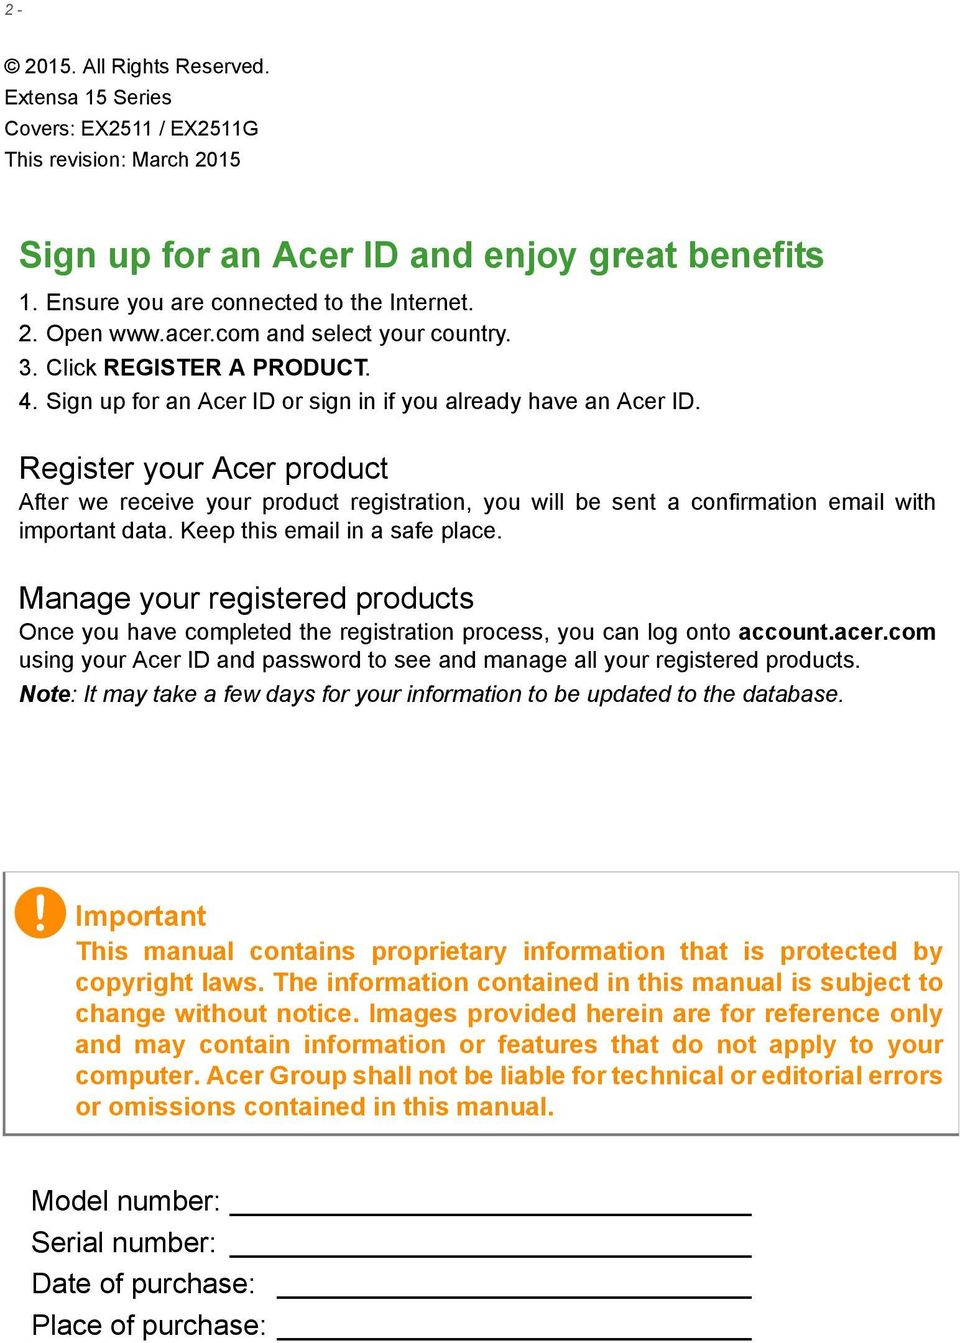 Register your Acer product After we receive your product registration, you will be sent a confirmation email with important data. Keep this email in a safe place.